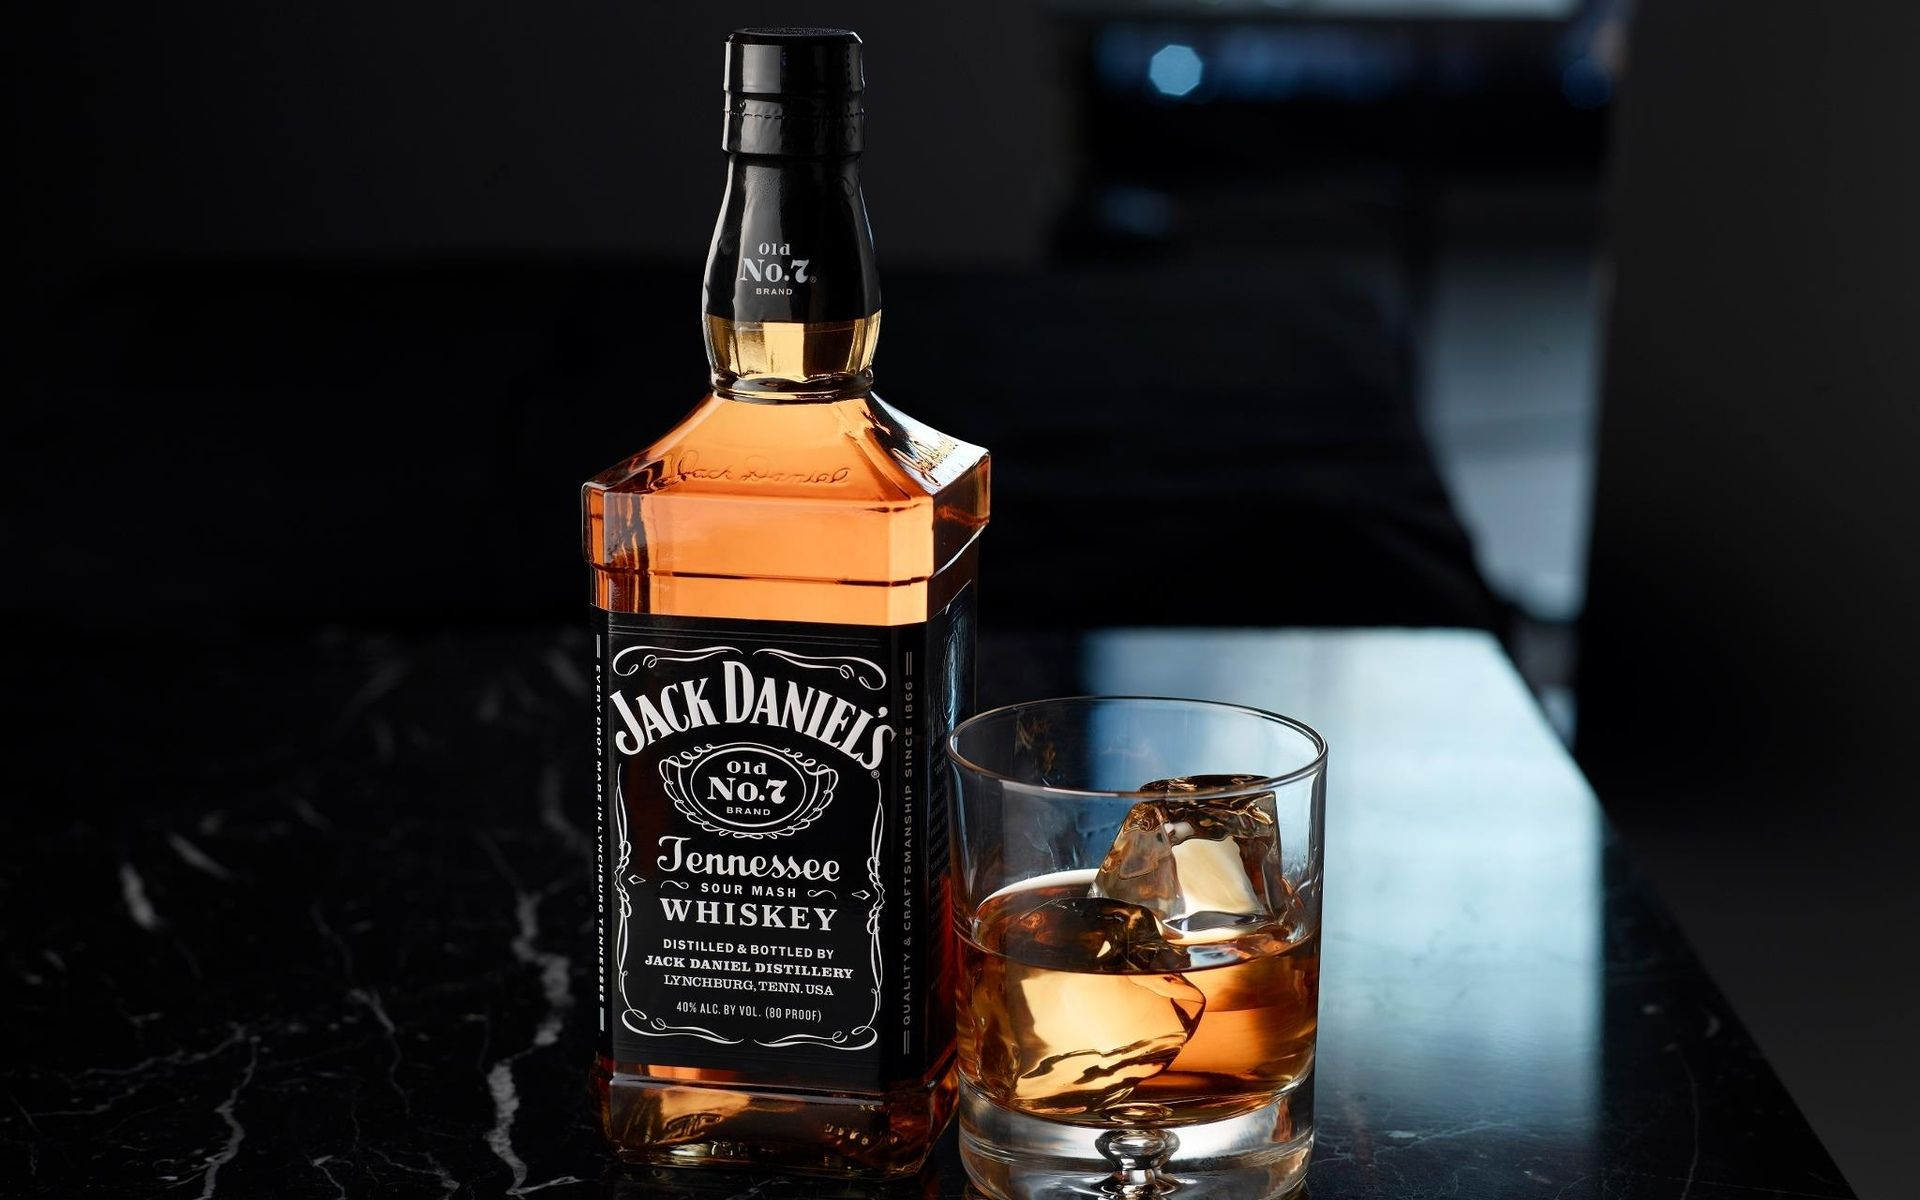 Jack daniels whiskey drink wallpaper high resolution wallpaper jack daniels whiskey drink wallpaper high resolution wallpaper full size voltagebd Gallery